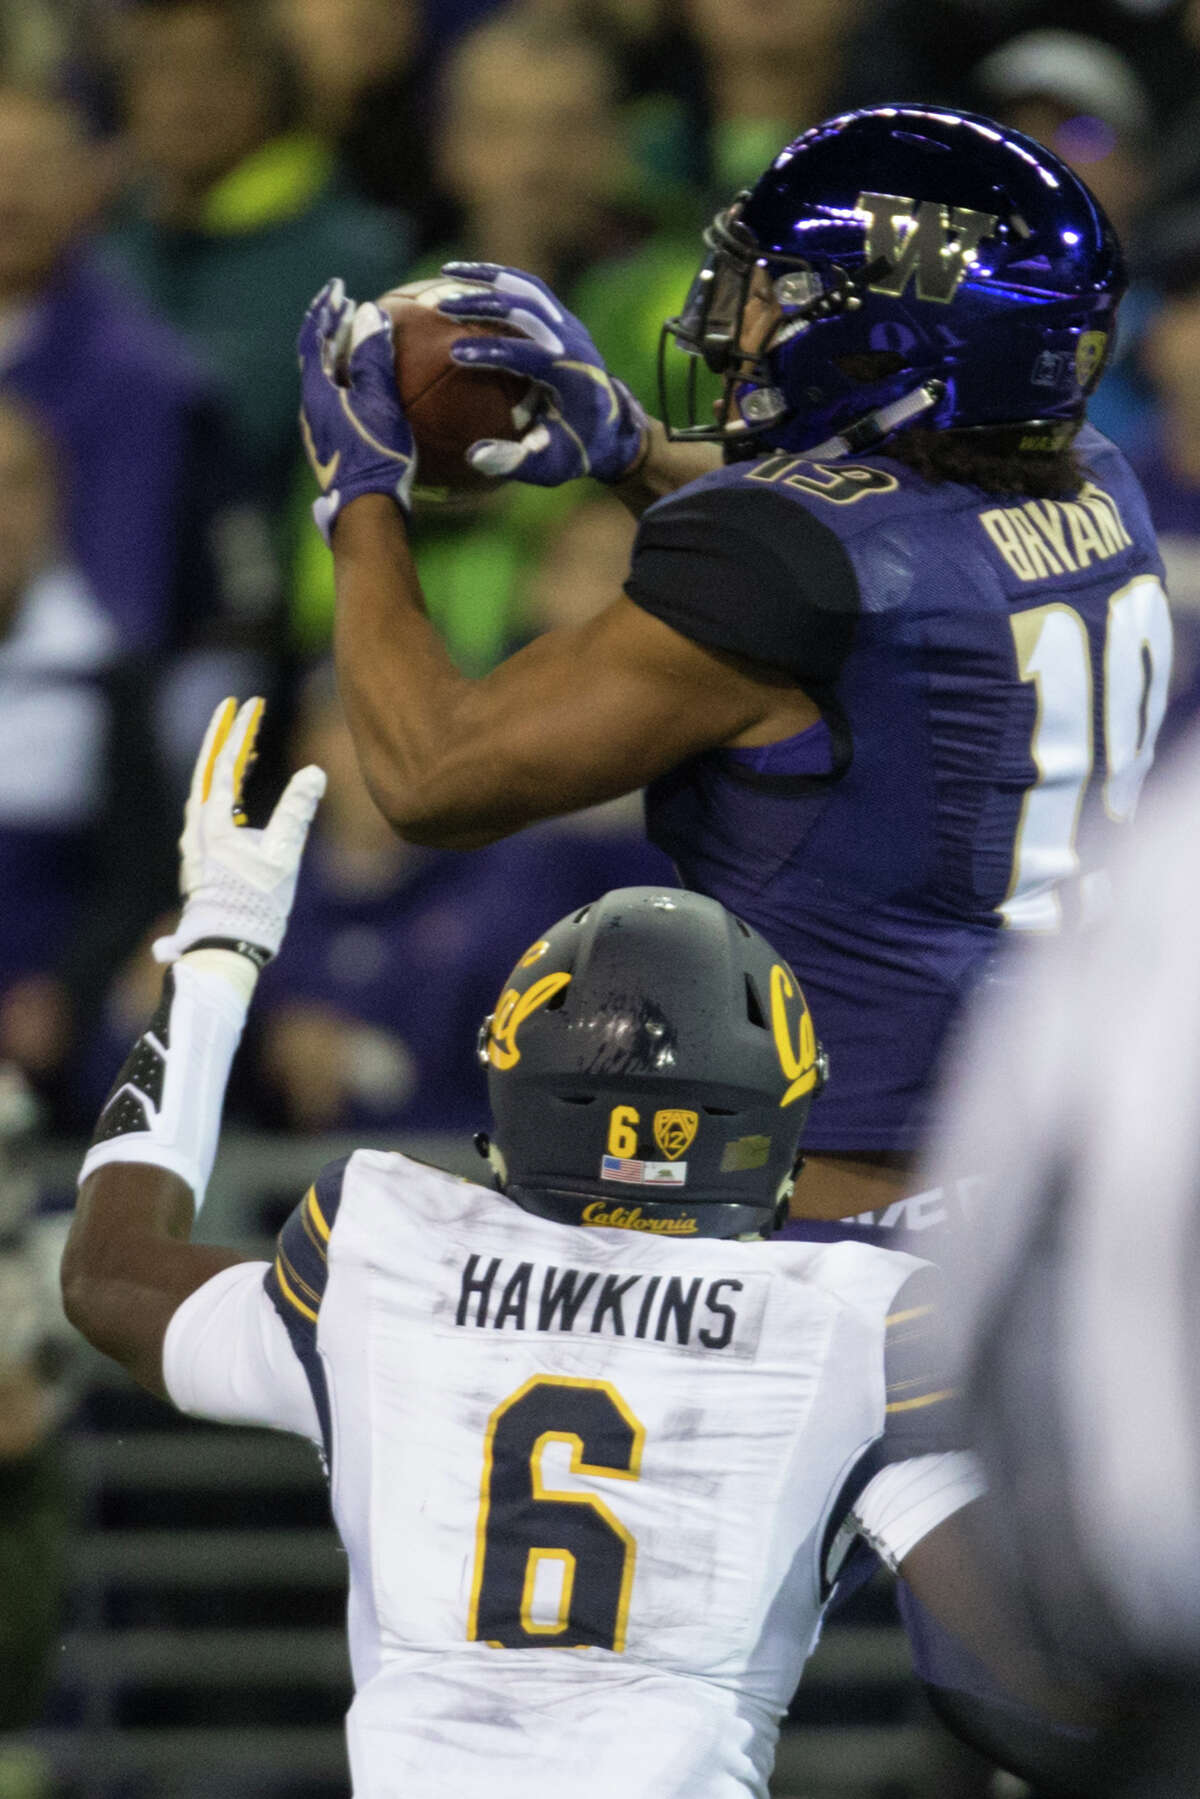 Washington tight end Hunter Bryant intercepts a pass meant for California wide receiver Jeremiah Hawkins during the first half of an NCAA football game at Husky Stadium on Saturday, Oct. 7, 2017.